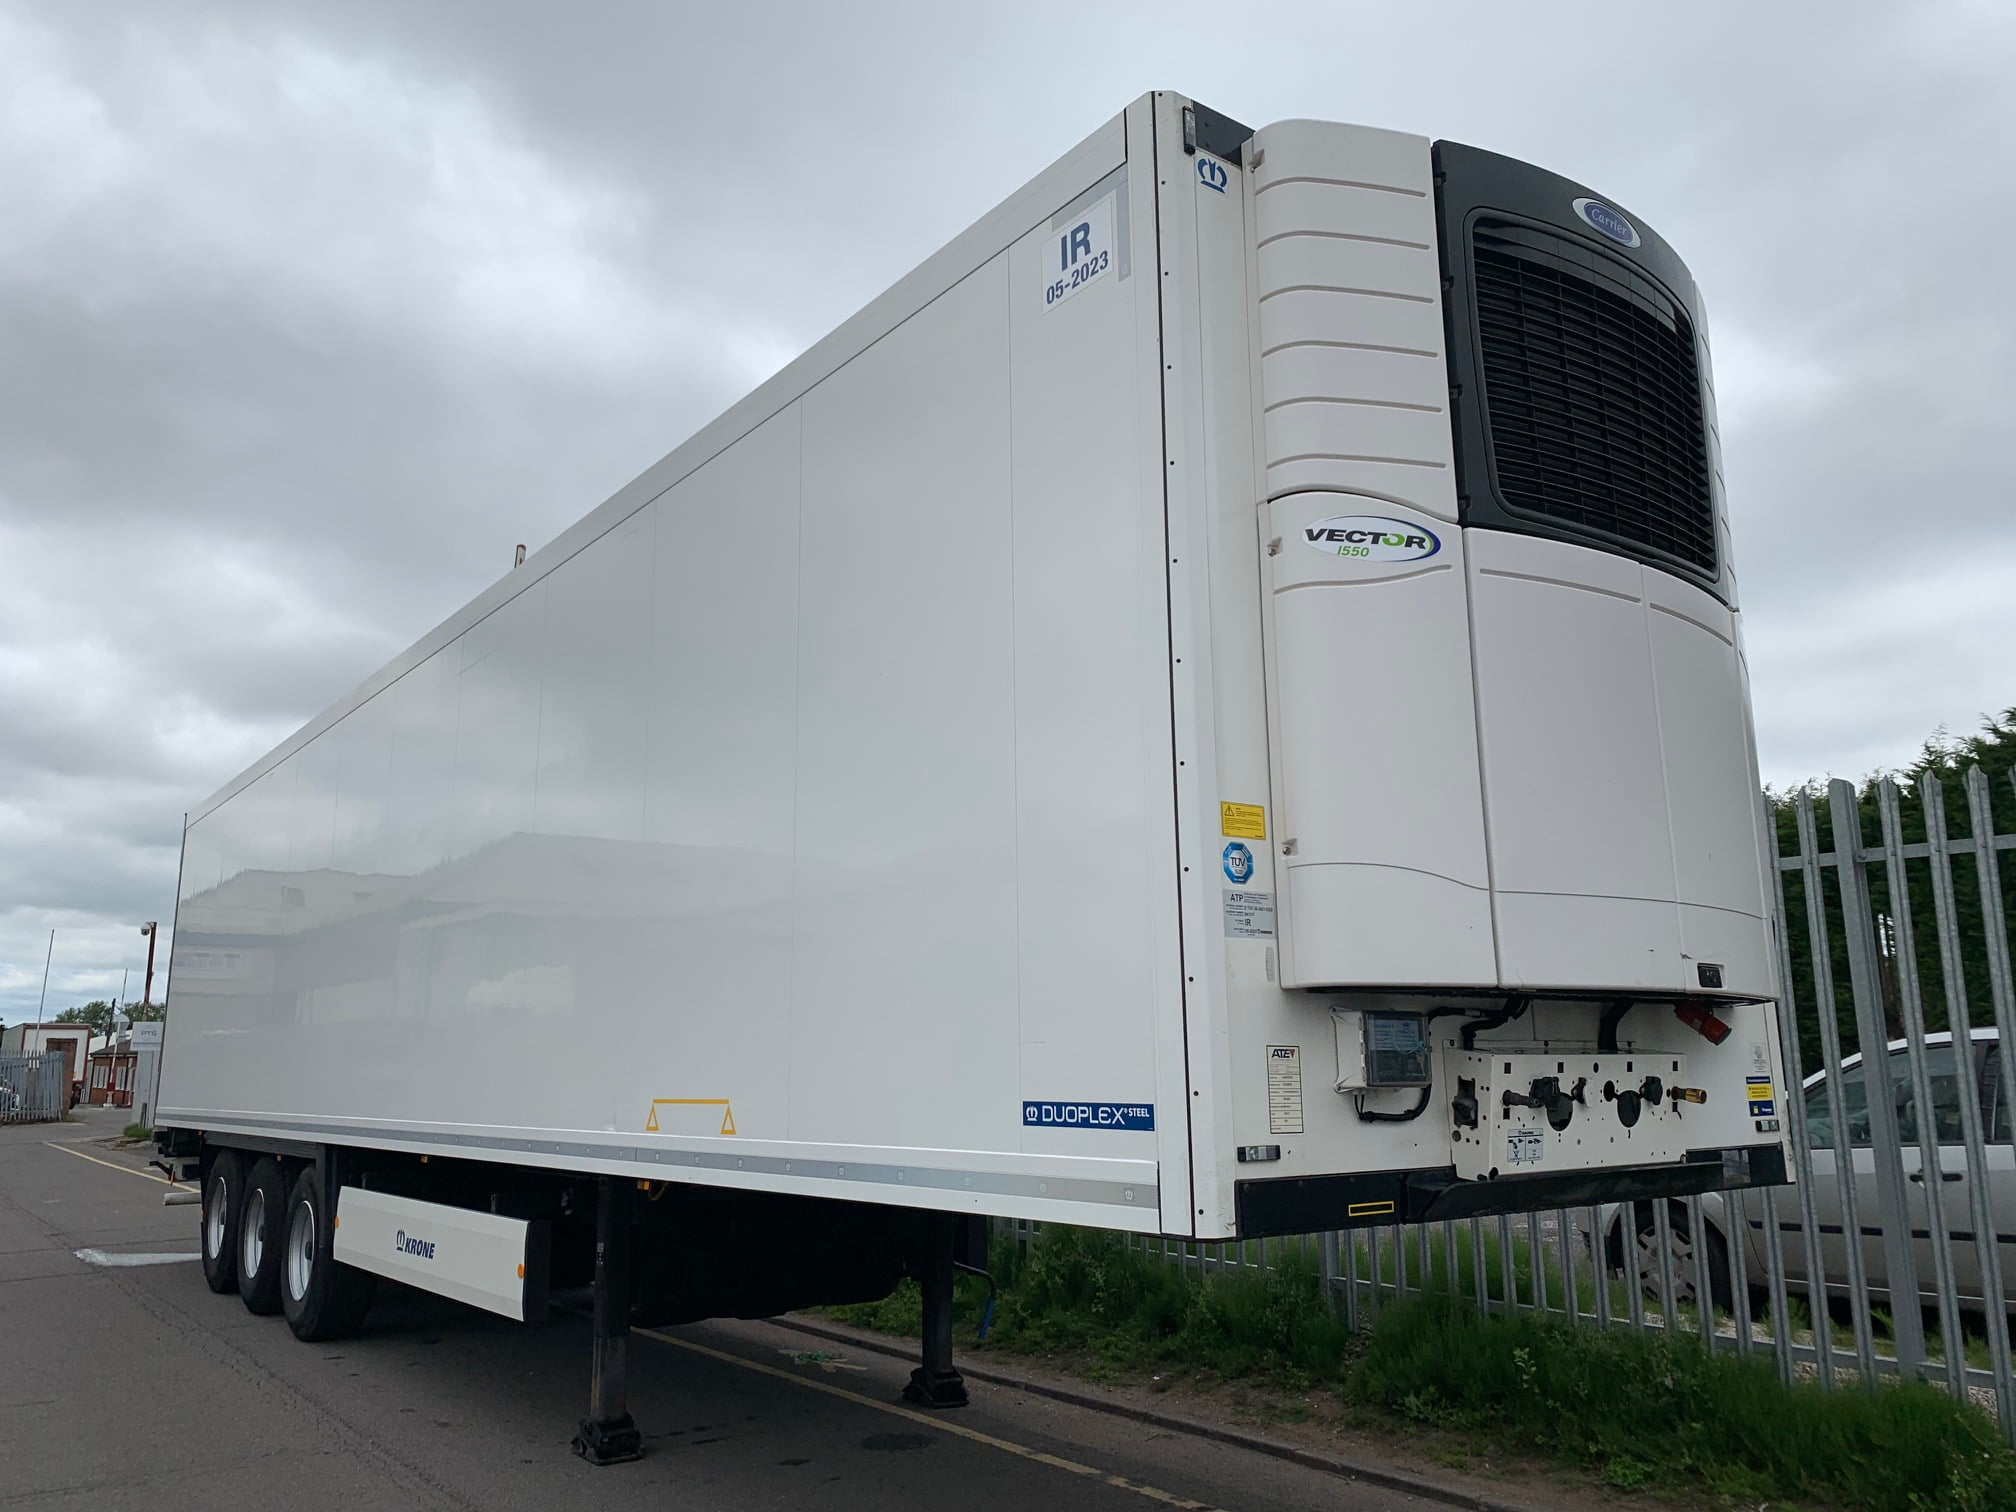 2017 Krone Single Temp Fridge Trailer. Carrier Vector 1550 Engine, 2.6m Internal Height, BPW Axles, Drum Brakes, Aluminium Floor, Barn Doors, 2 x Load Lock Rails, Wheel Chocks, Raise Lower Valve Facility.